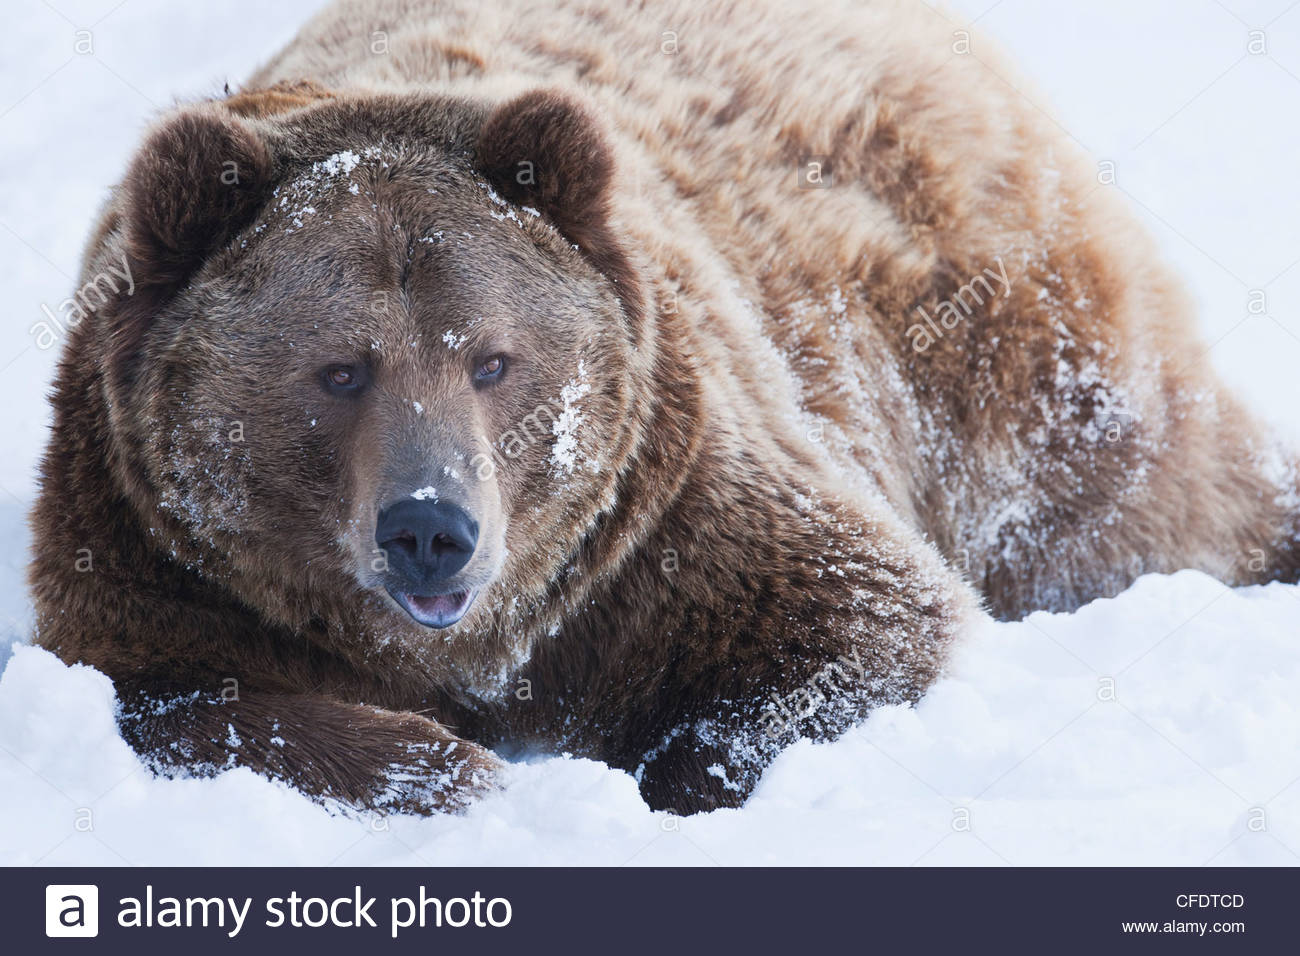 Brown bear (Ursus arctos) lies in snow, Grizzly Encounter in Bozeman, Montana, United States of America, - Stock Image